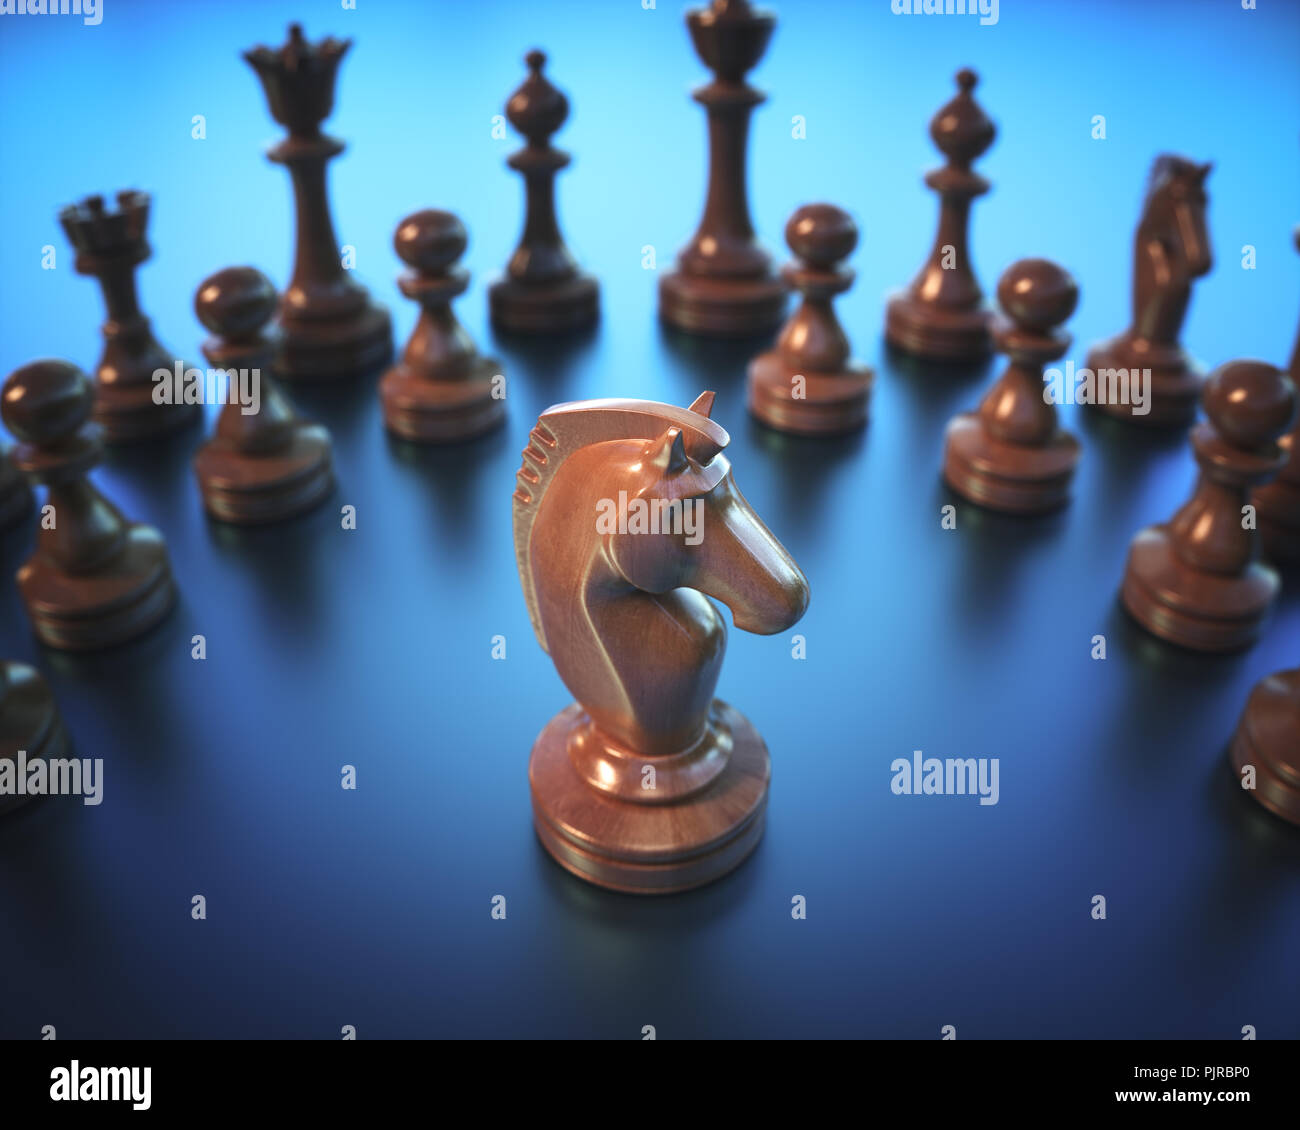 The Knight in highlight. Pieces of chess game, image with shallow depth of field. - Stock Image